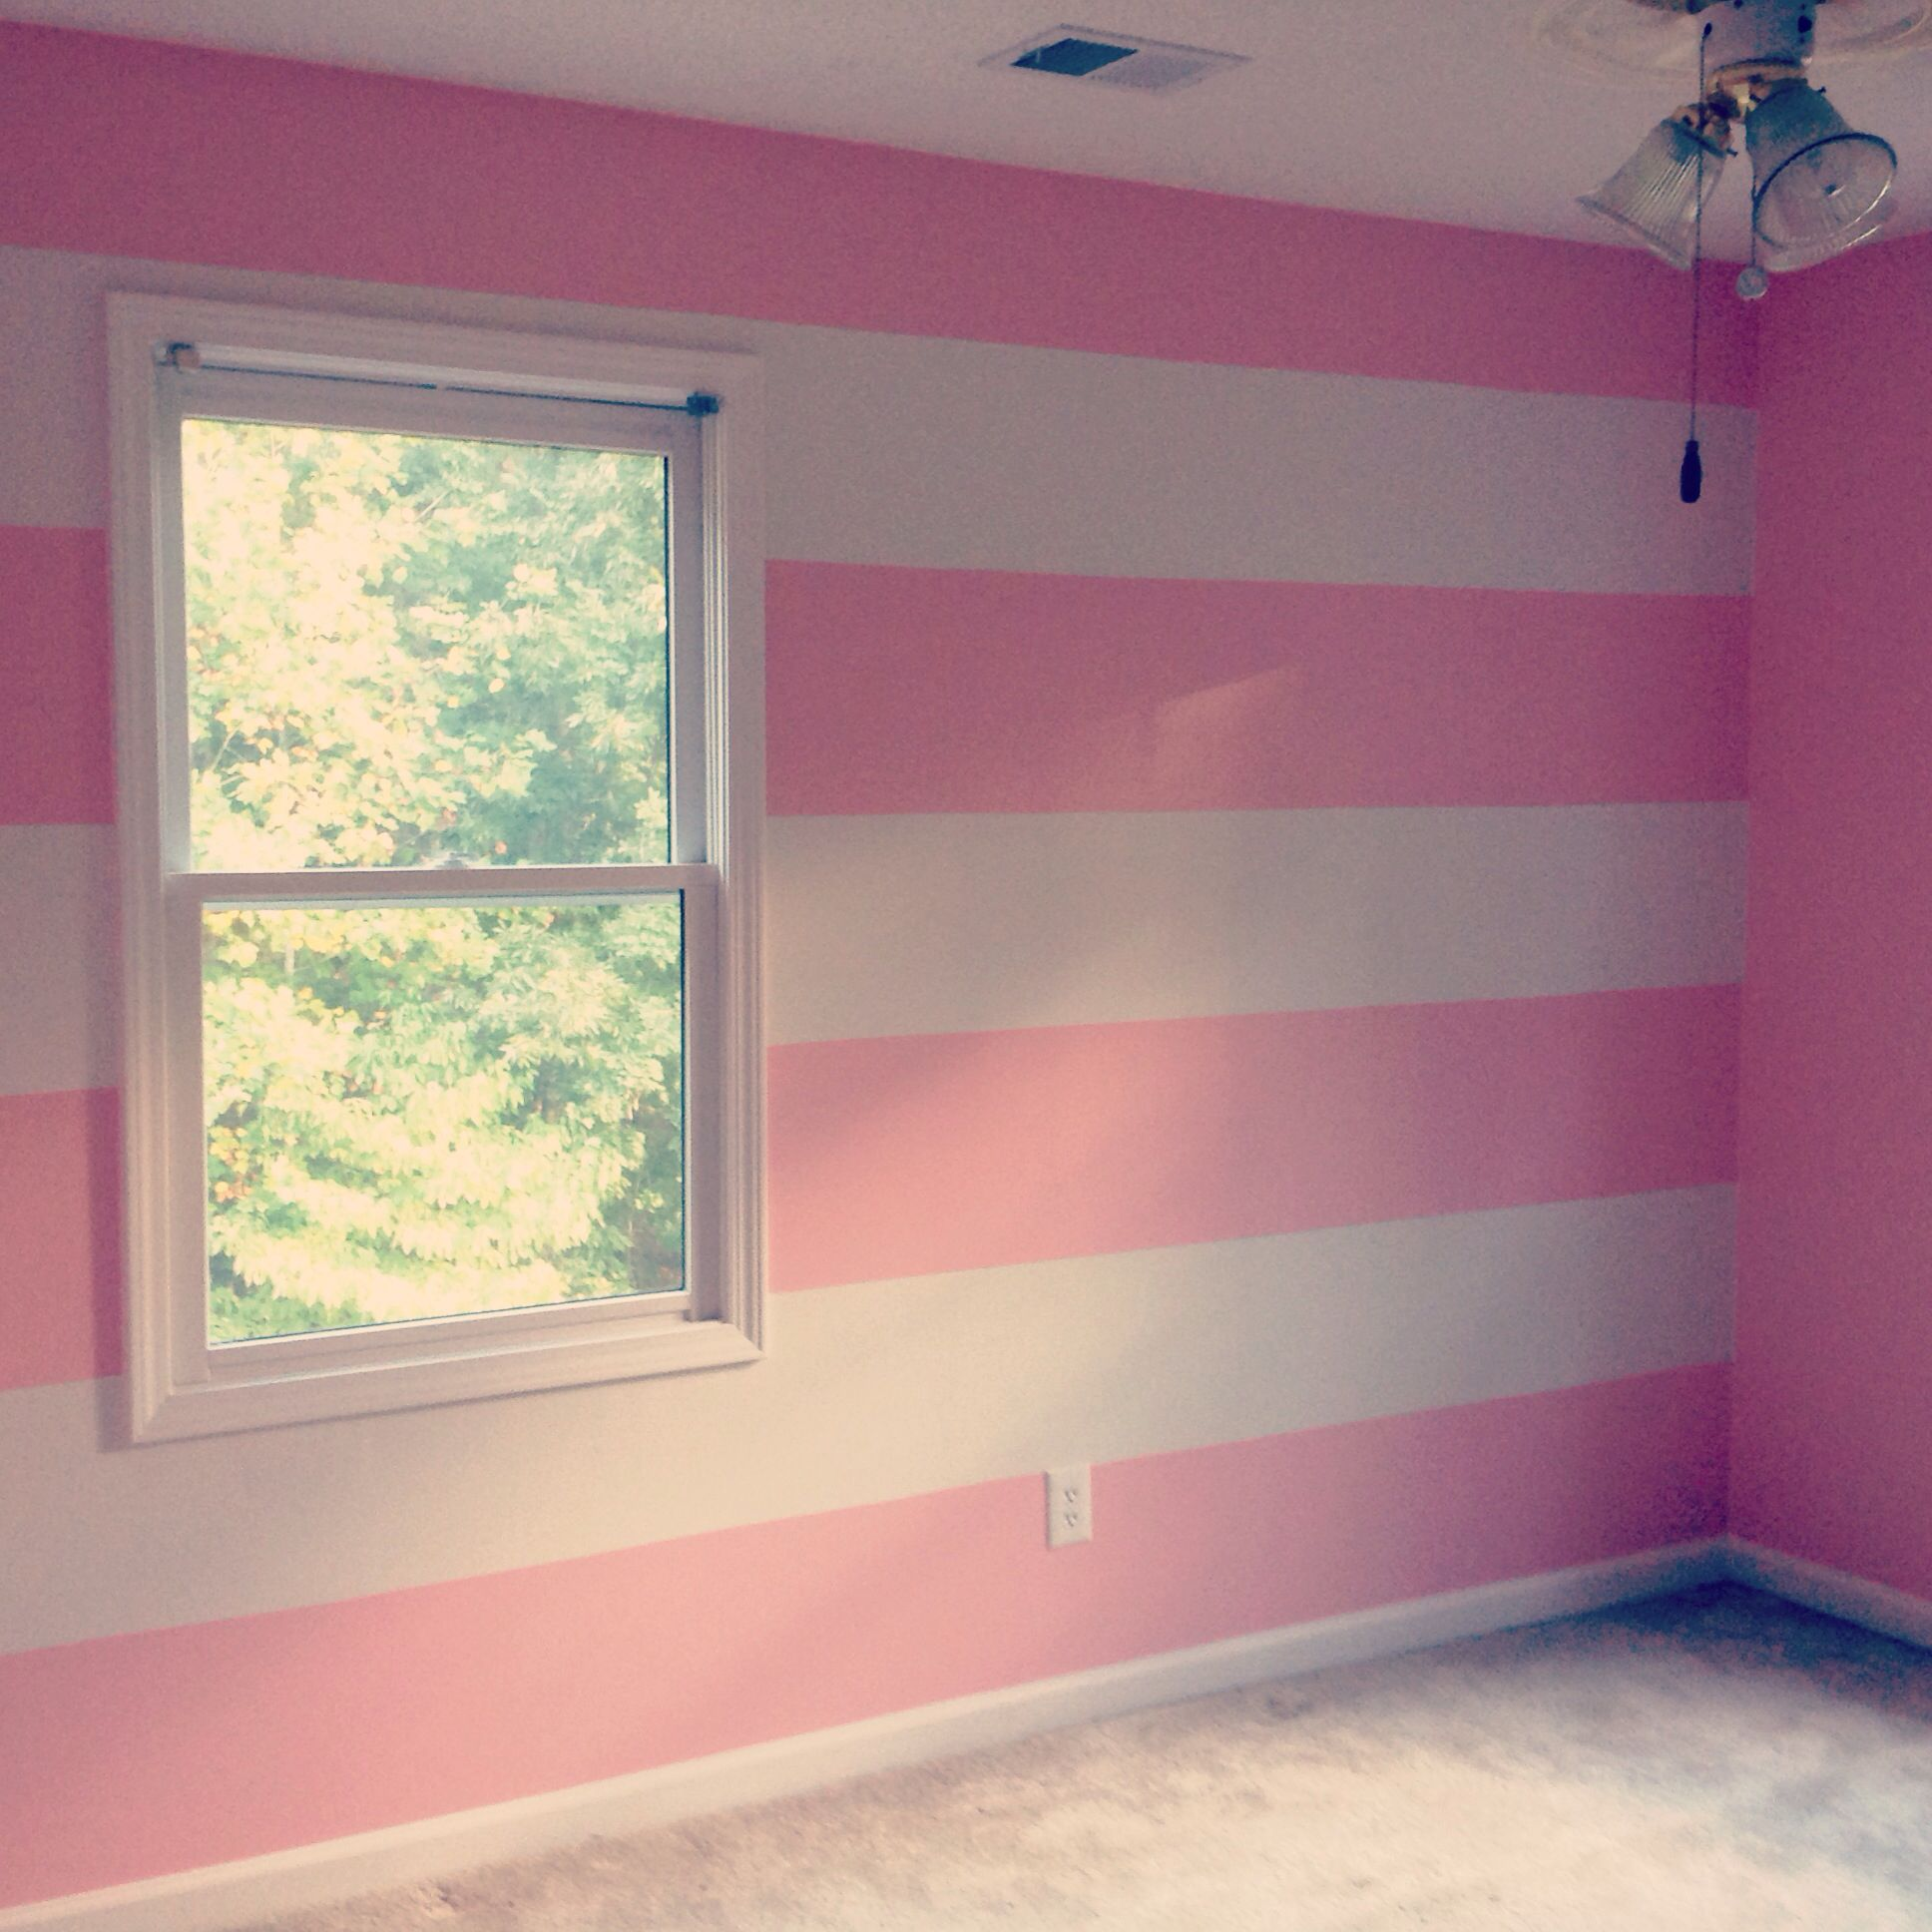 Pink And White Horizontal Wall Stripes Nursery Babygirl Pink Striped Walls Striped Walls Teal Bedroom Walls